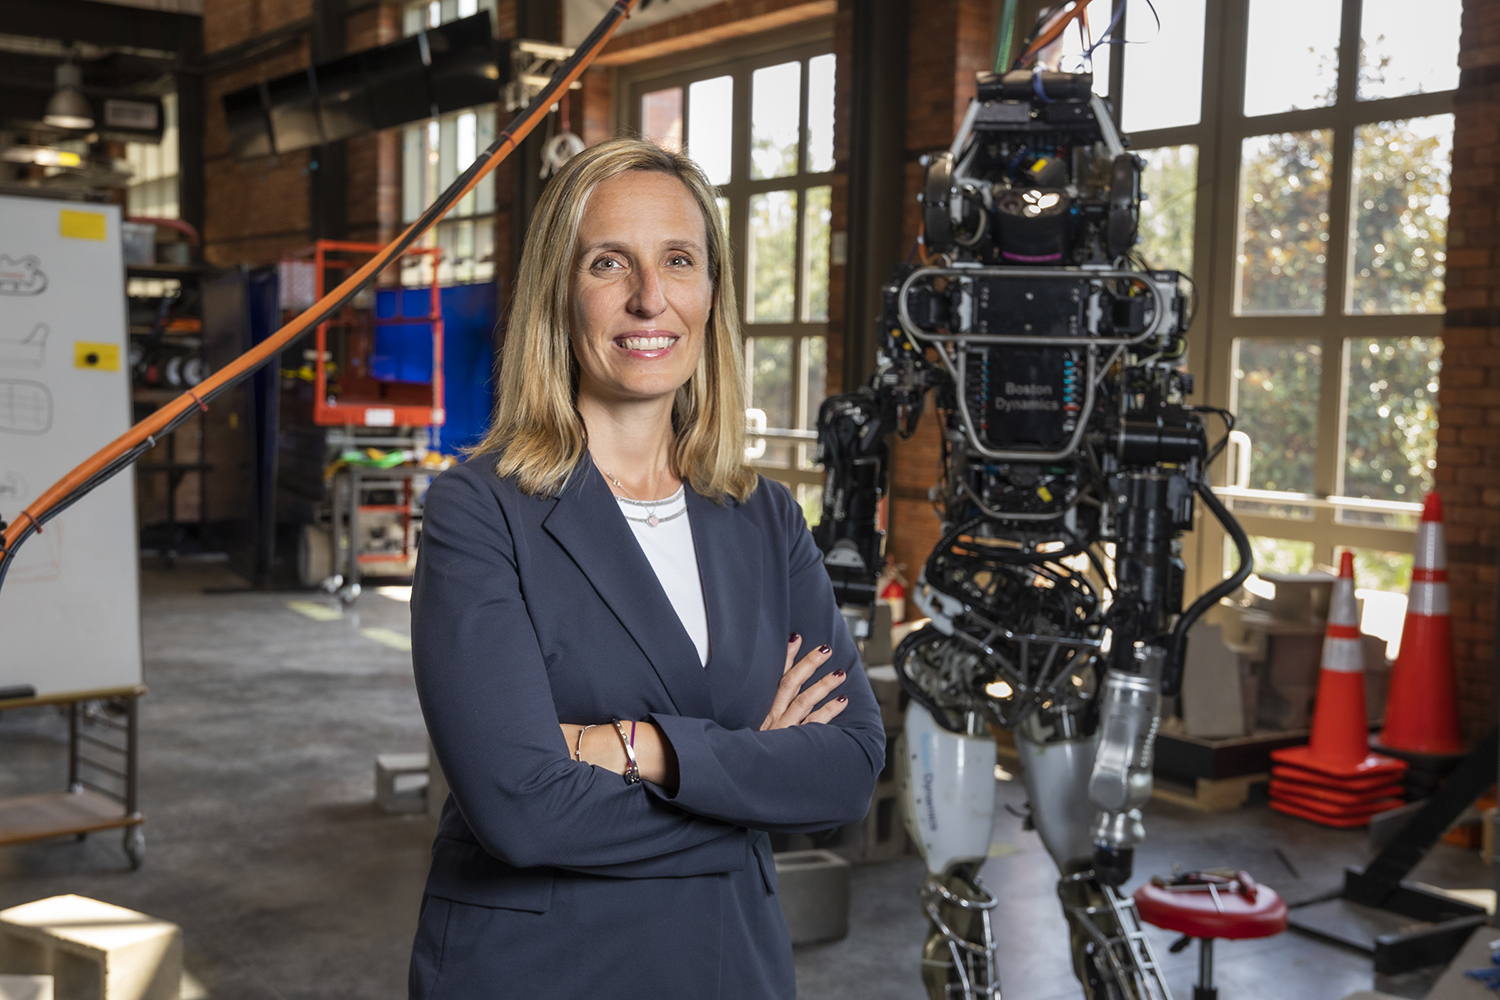 Inaugural Director of the Ph.D. in Intelligent Systems and Robotics Dr. Kristen Brent Venable at IHMC